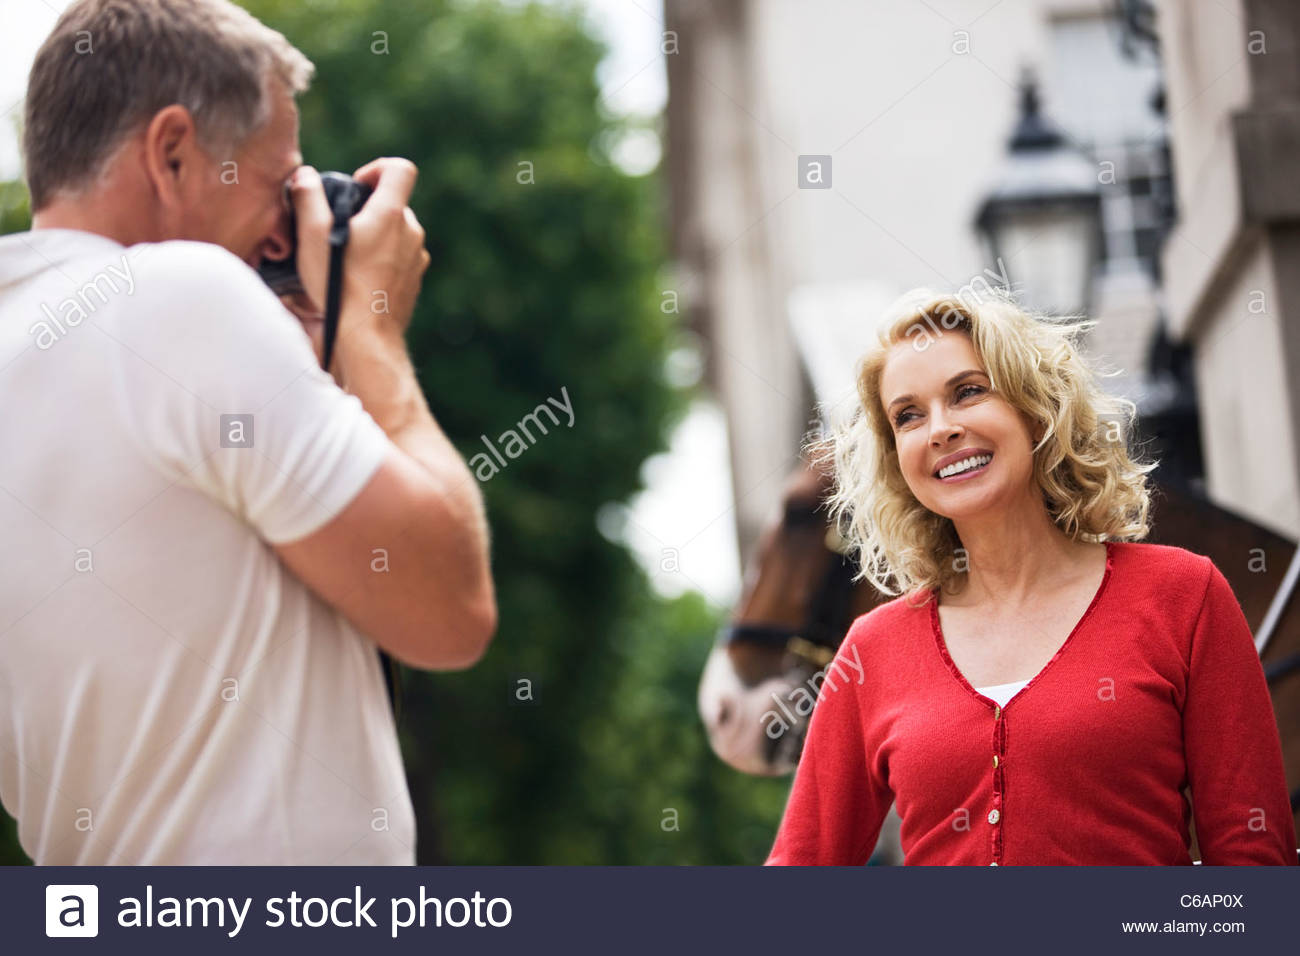 A middle-aged man taking a photograph of his partner in front of Horse Guards - Stock Image